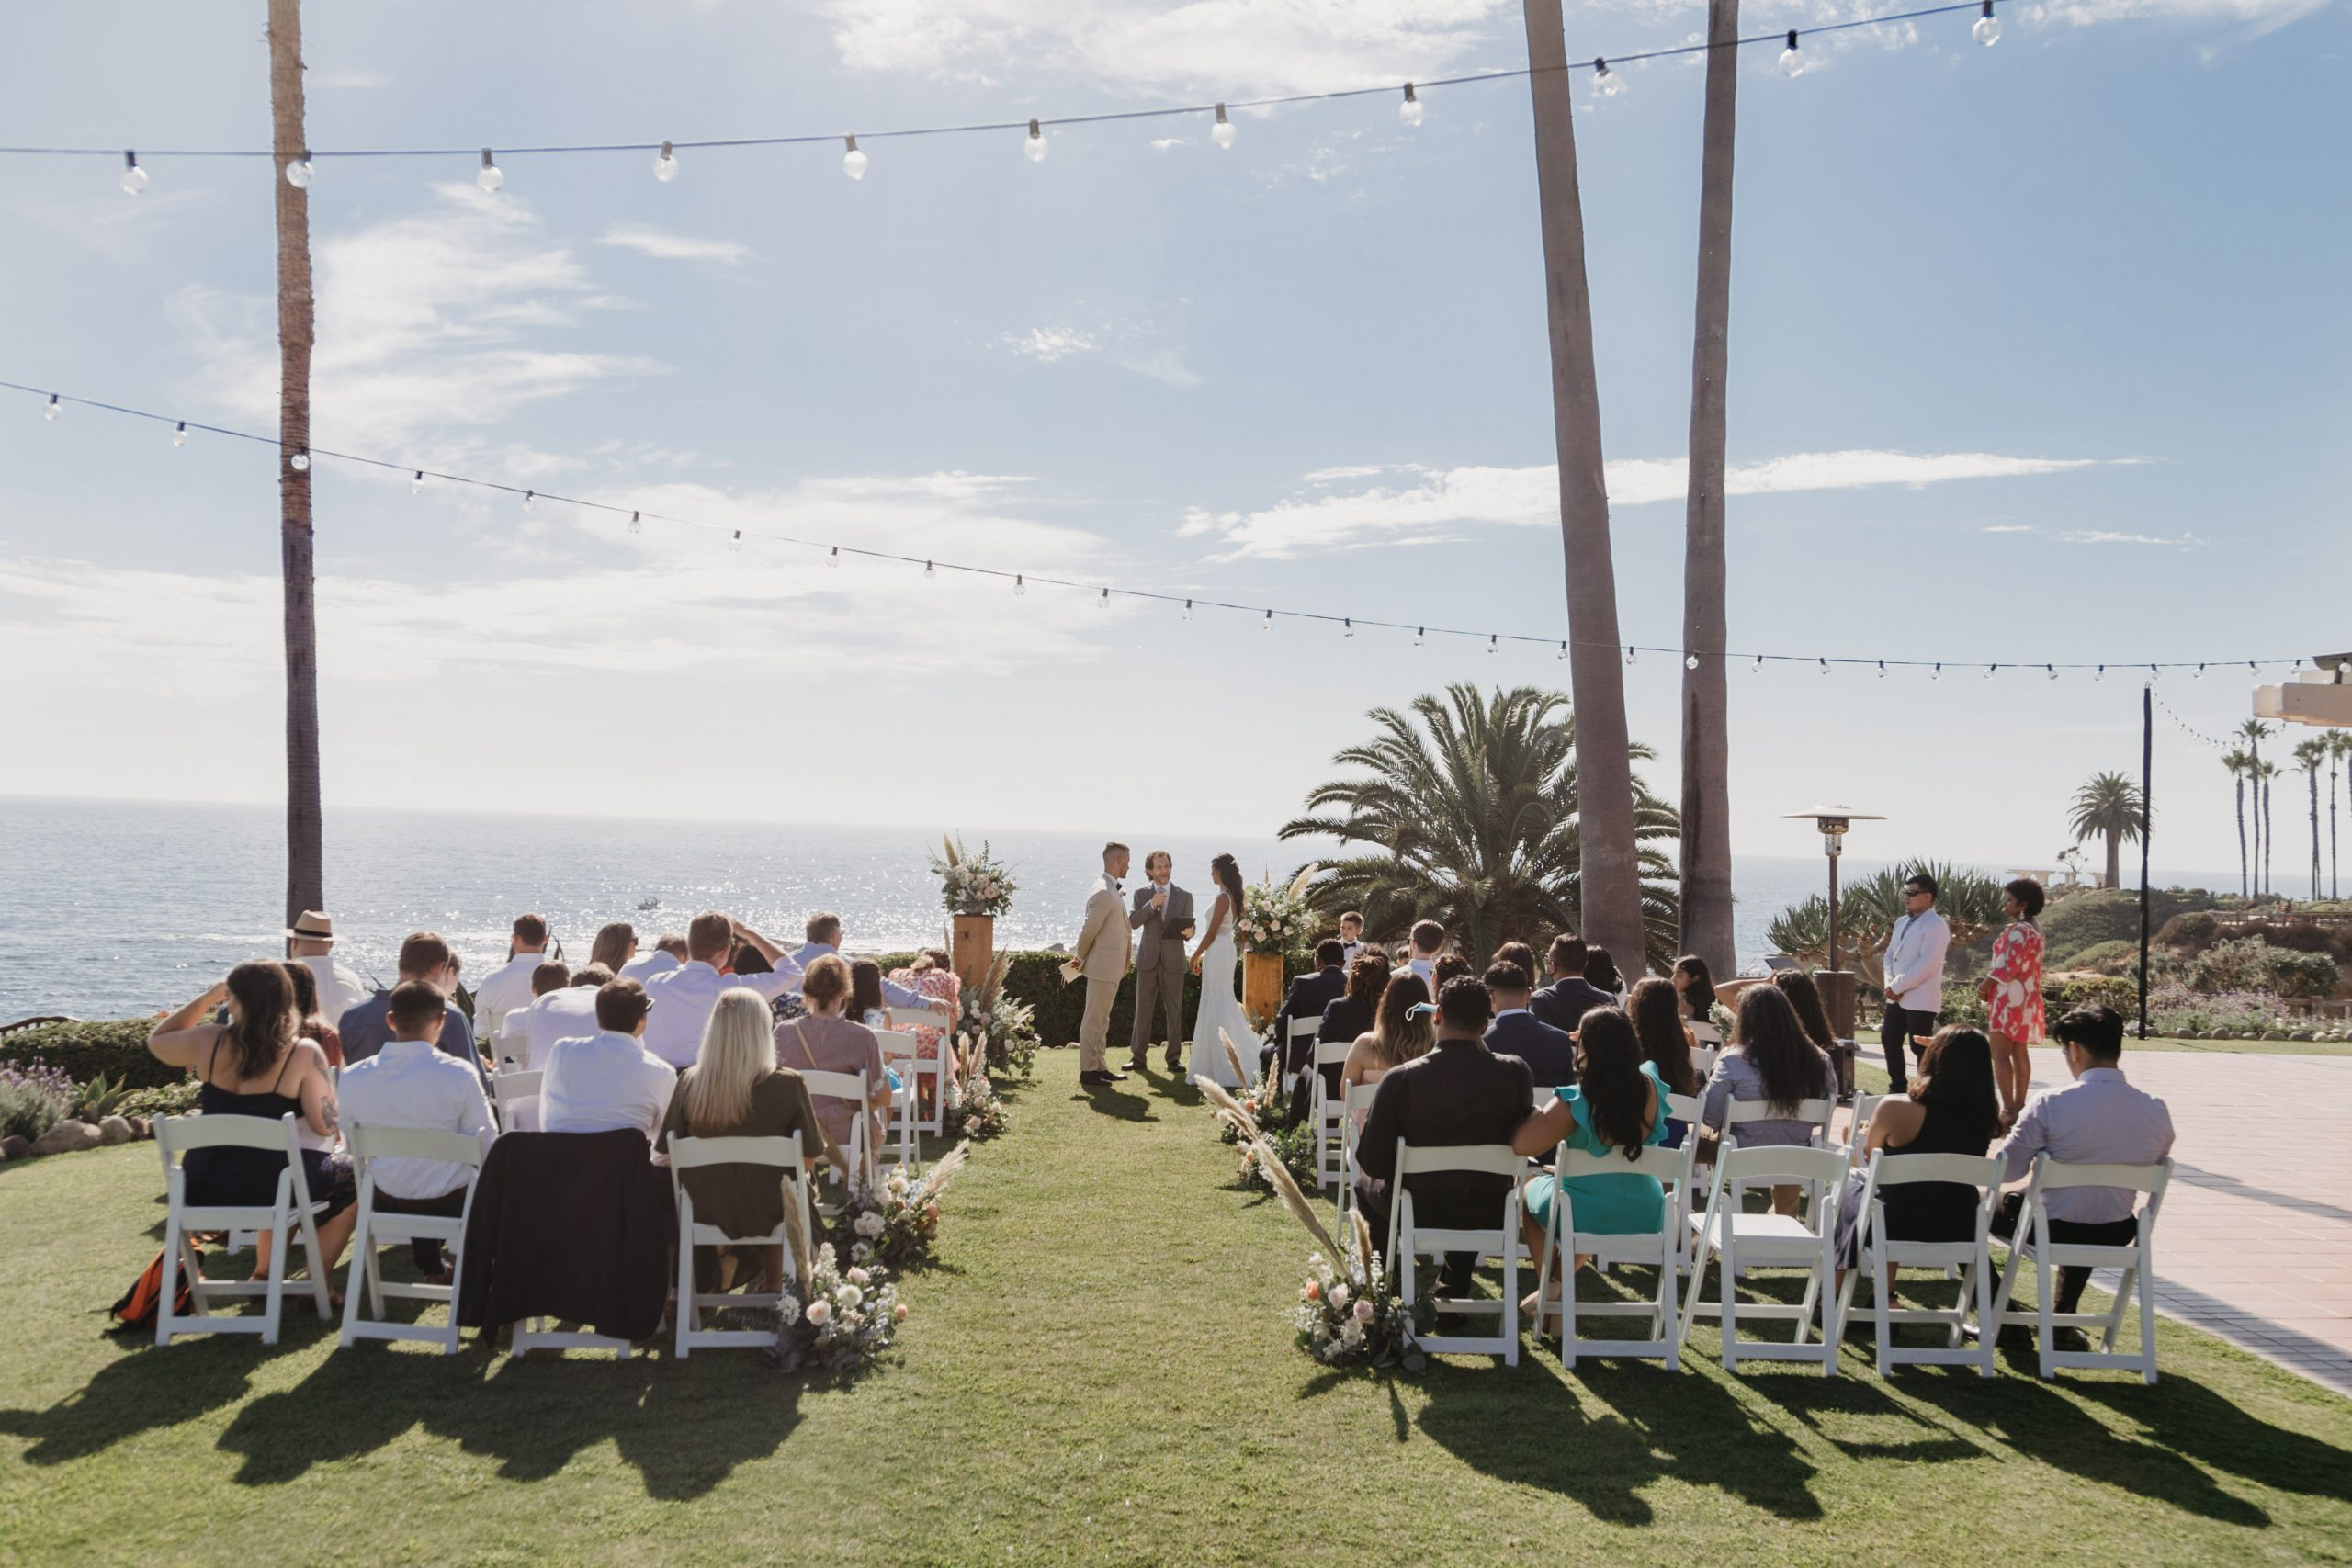 The Montage Laguna Beach Wedding Ceremony, image by Fatima Elreda Photo